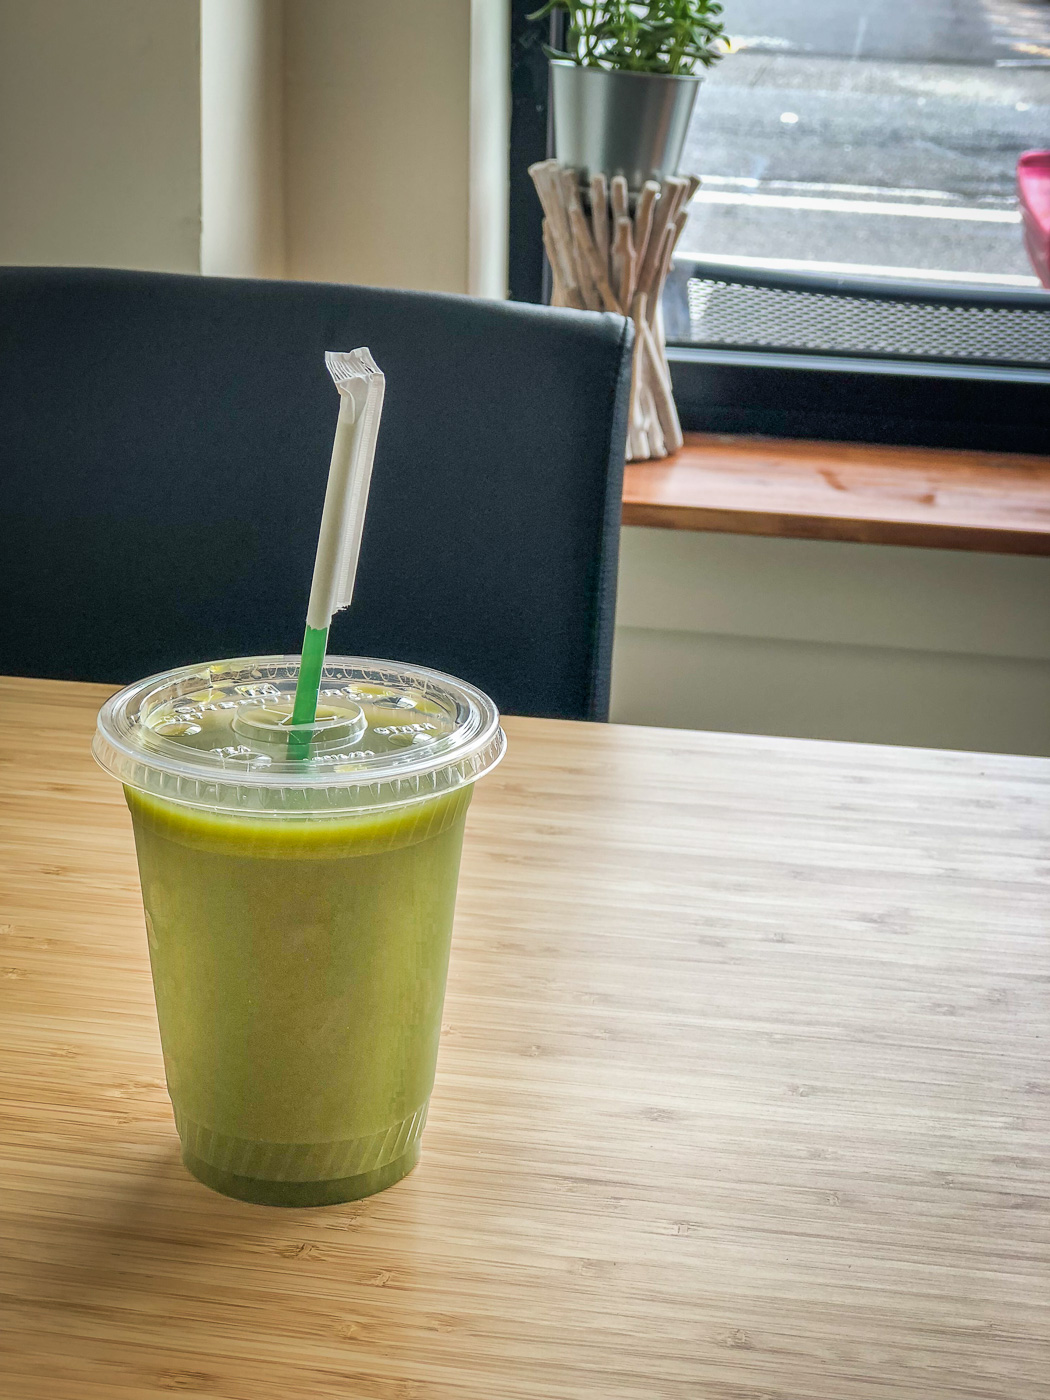 Plastic cup on a bamboo table full of green juice